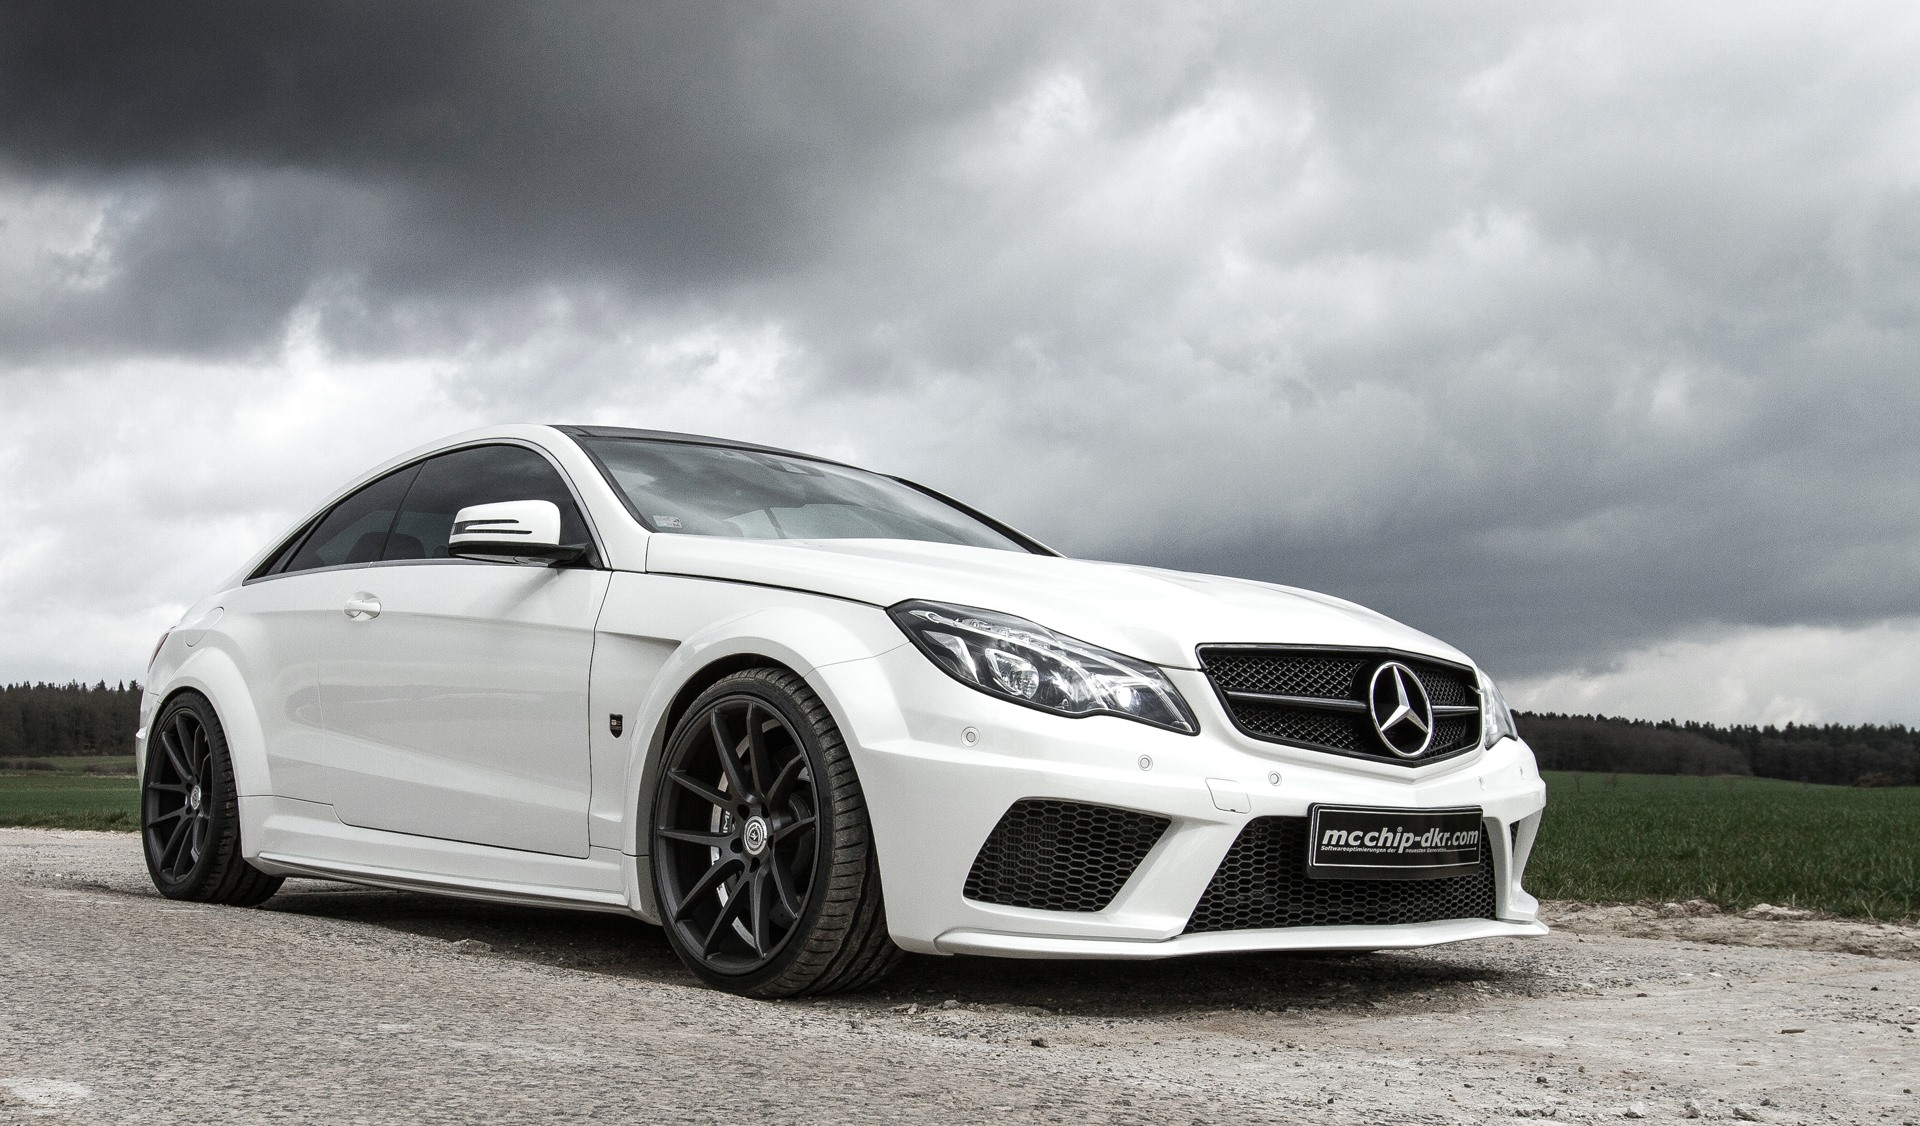 C207 E-Class Coupe Gets 680 HP 5 5-liter V8 Engine Swap from Mcchip